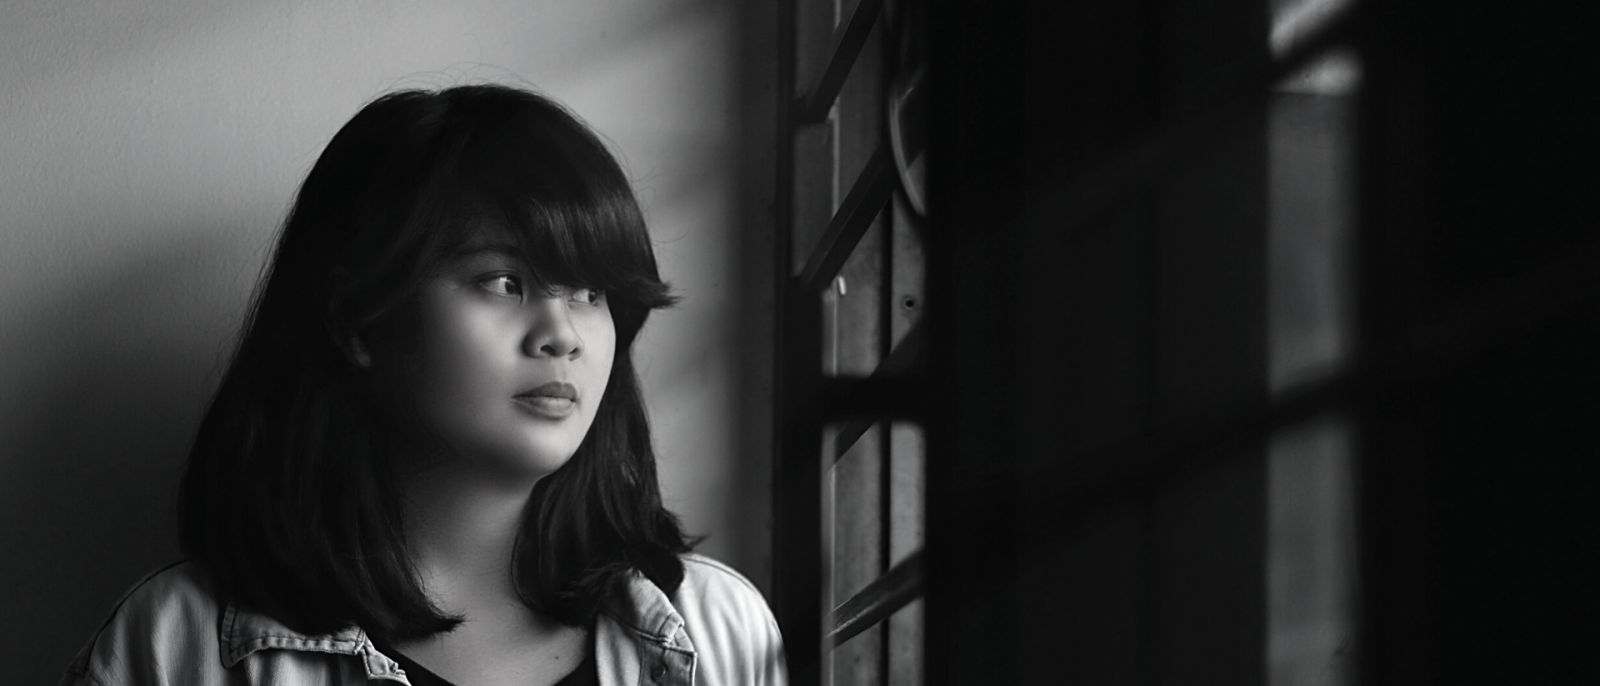 black and white photo of teen girl staring out a window